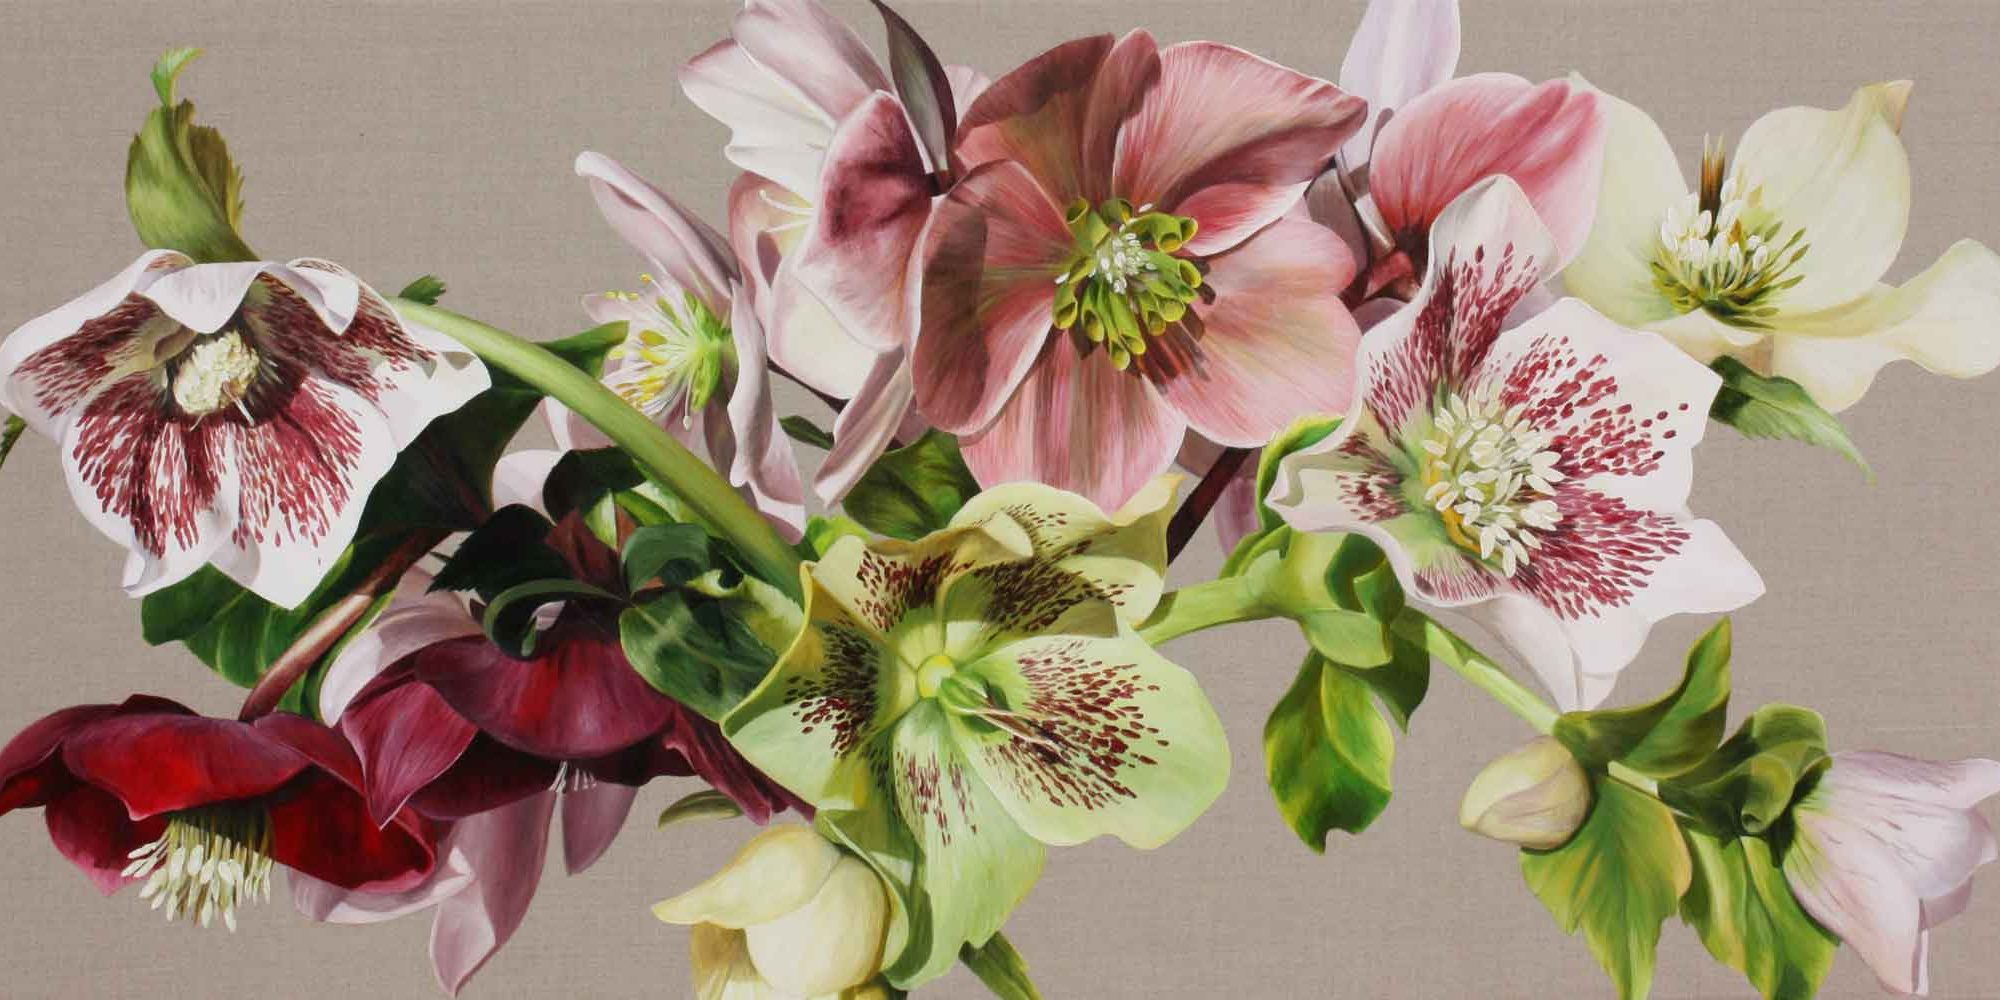 Pink and white and green hellebores on linen background. Painting by UK floral artist Sarah Caswell